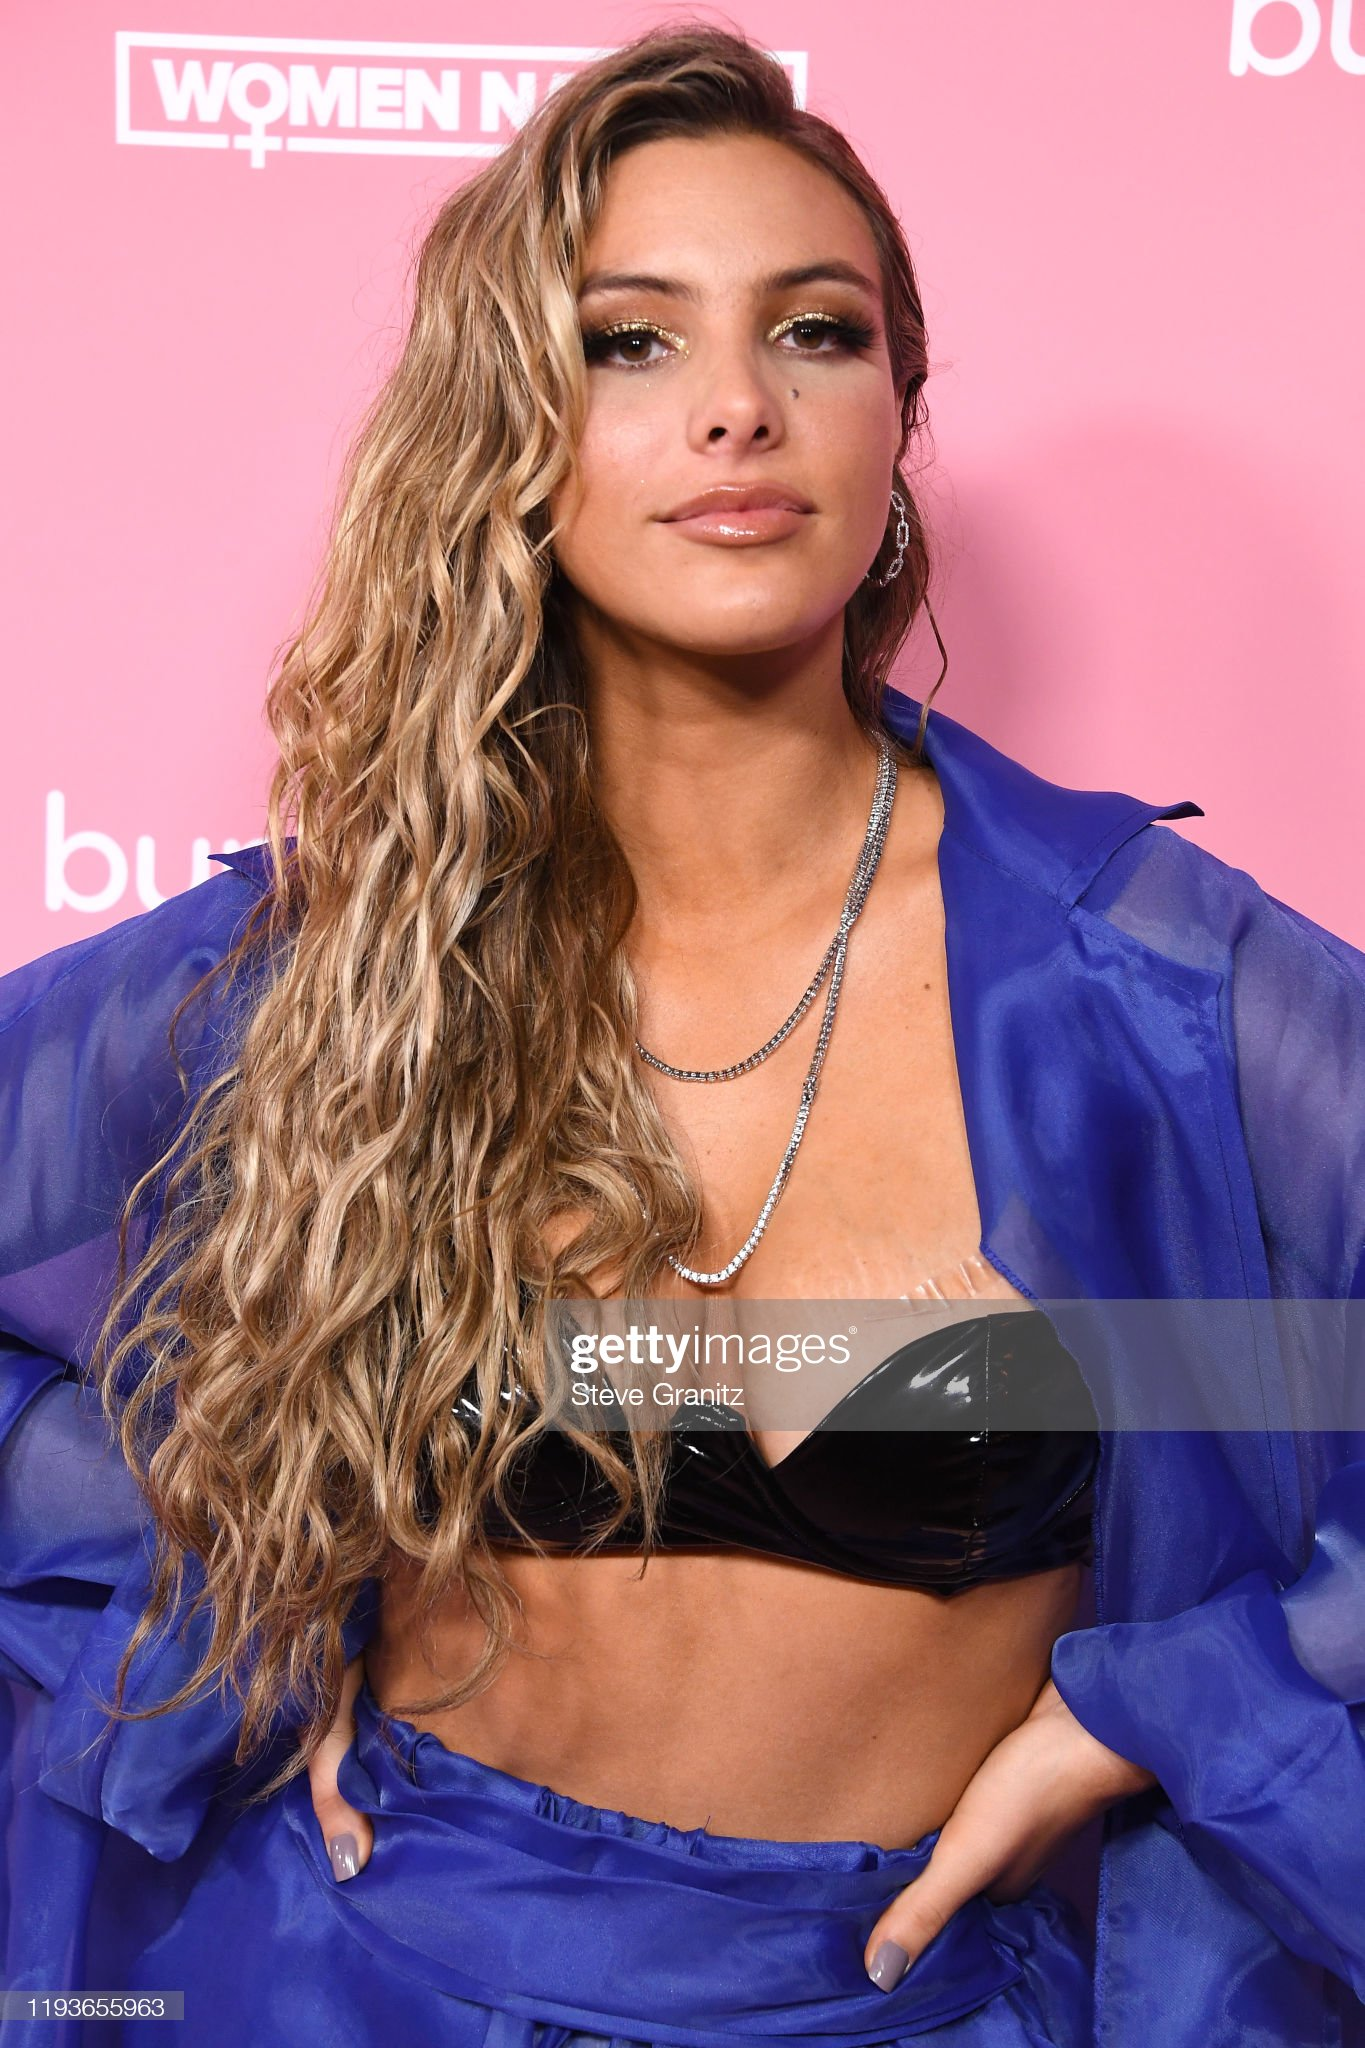 ¿Cuánto mide Lele Pons? - Altura - Real height Lele-pons-arrives-at-the-2019-billboard-women-in-music-at-hollywood-picture-id1193655963?s=2048x2048